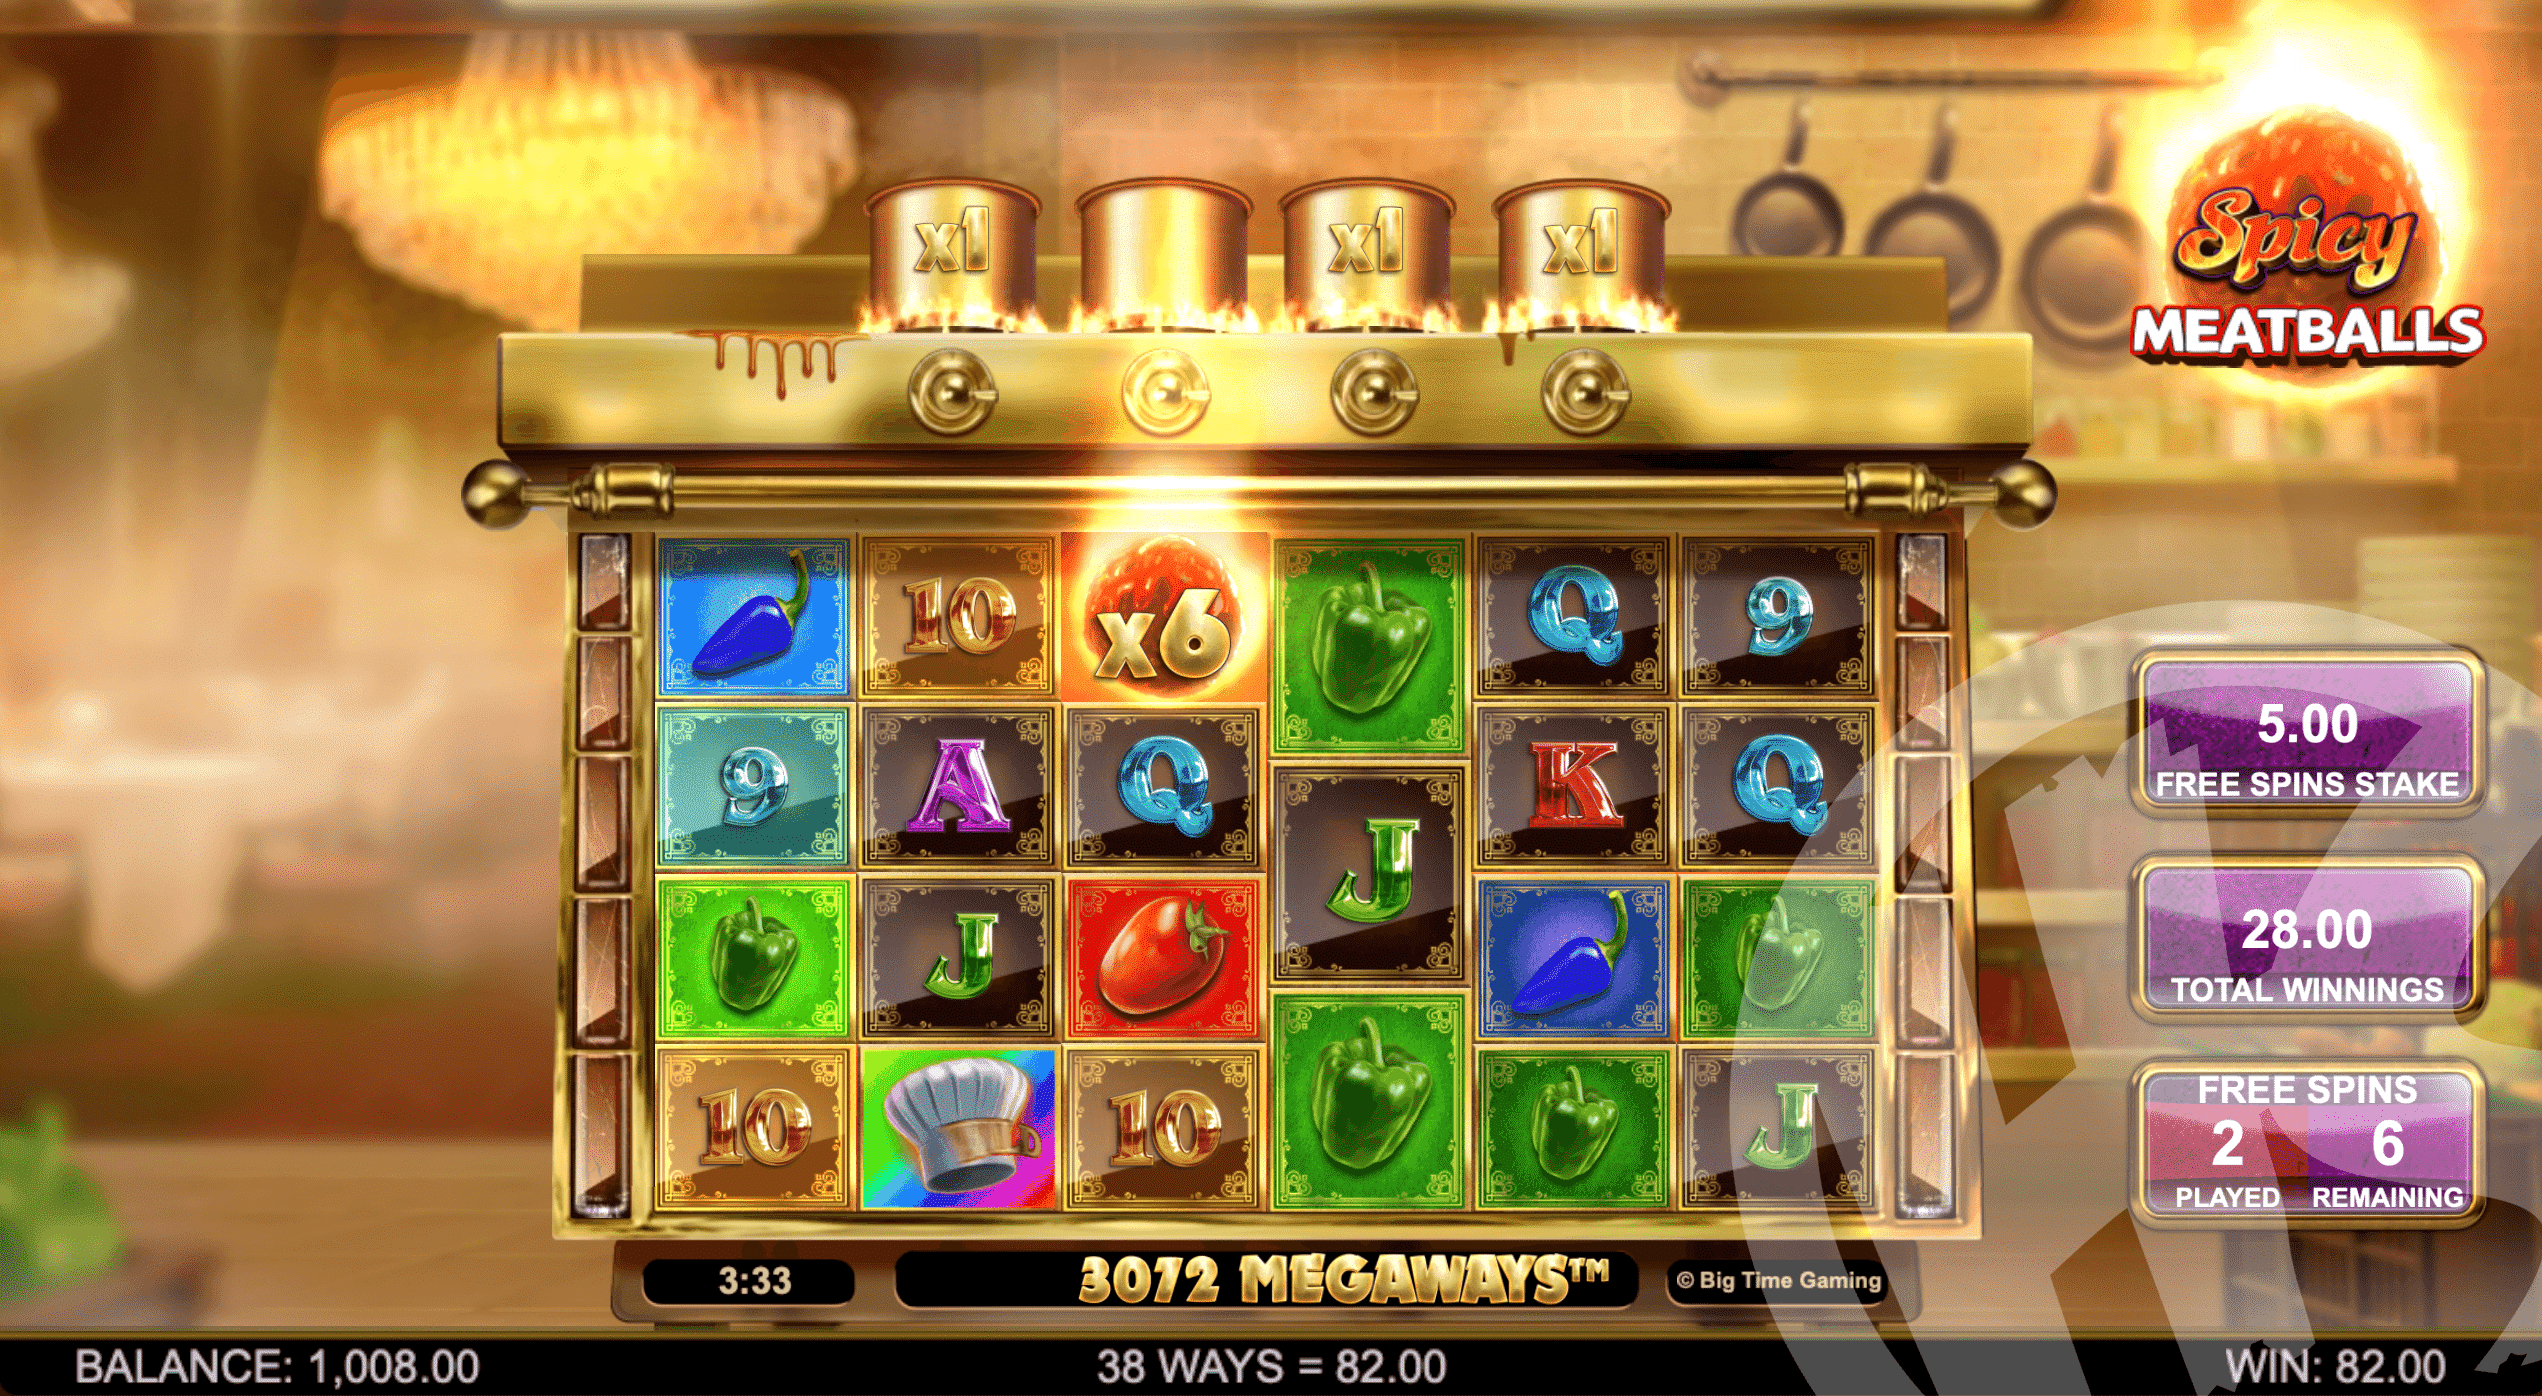 Multipliers Carry Over Into Free Spins